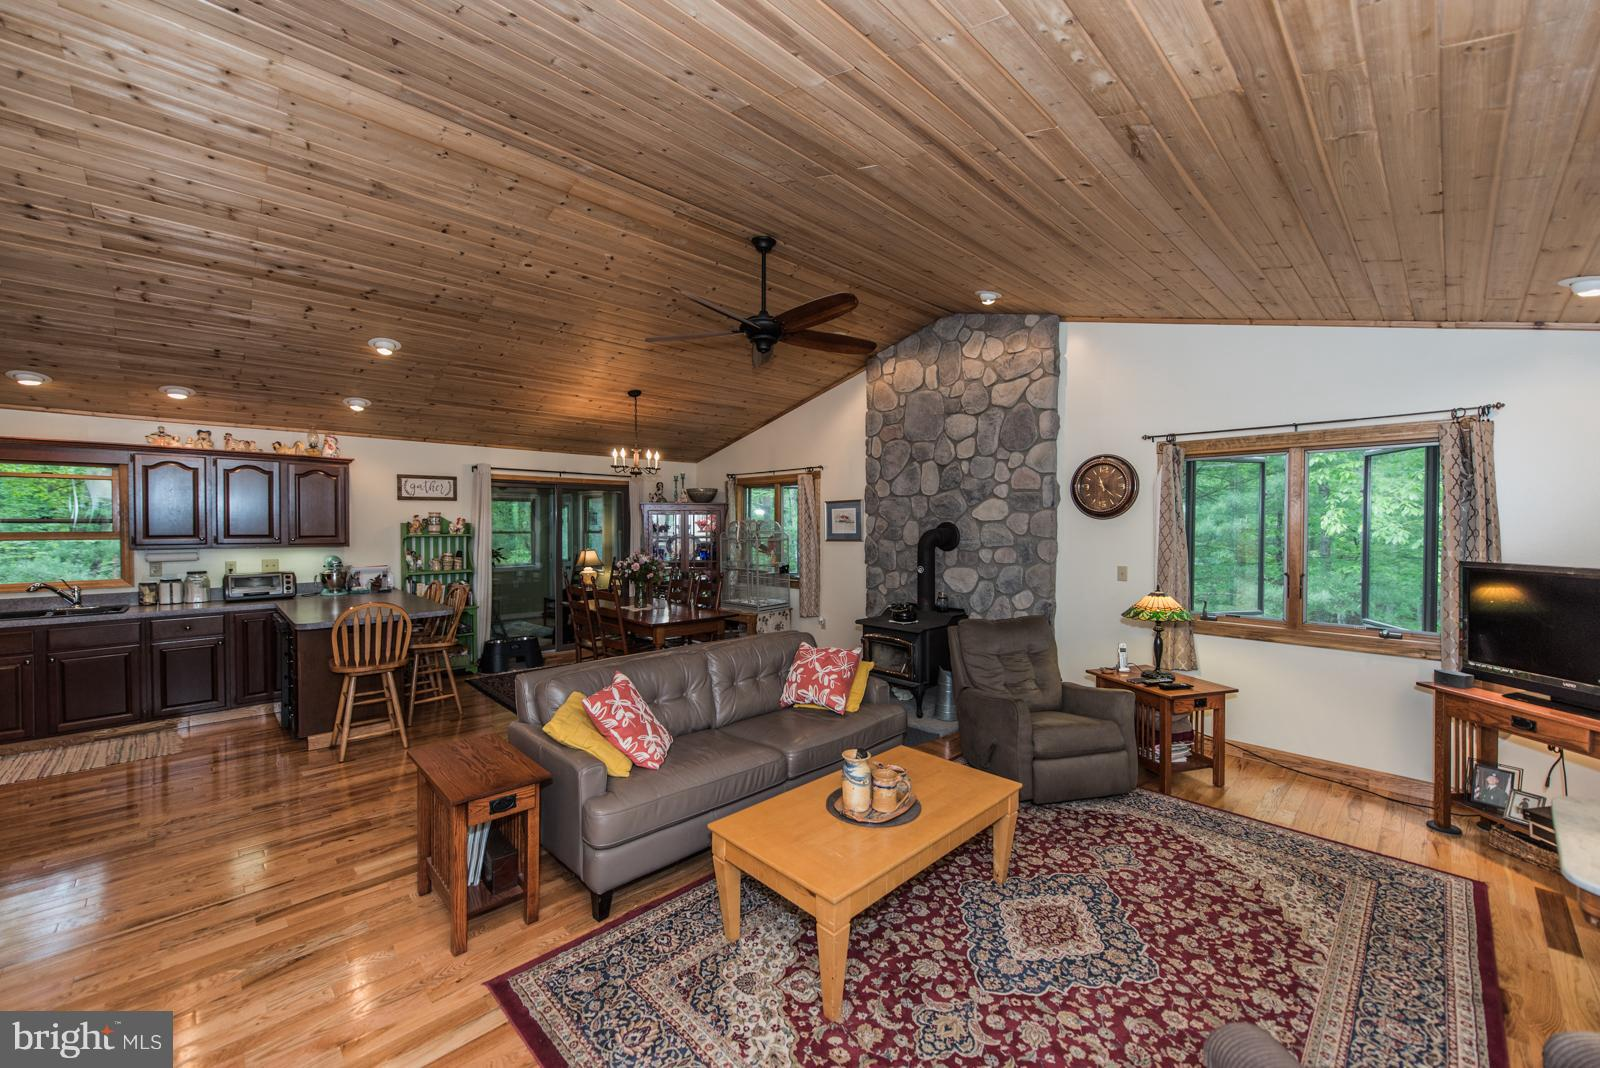 225 SIDELING MOUNTAIN TRAIL, GREAT CACAPON, WV 25422